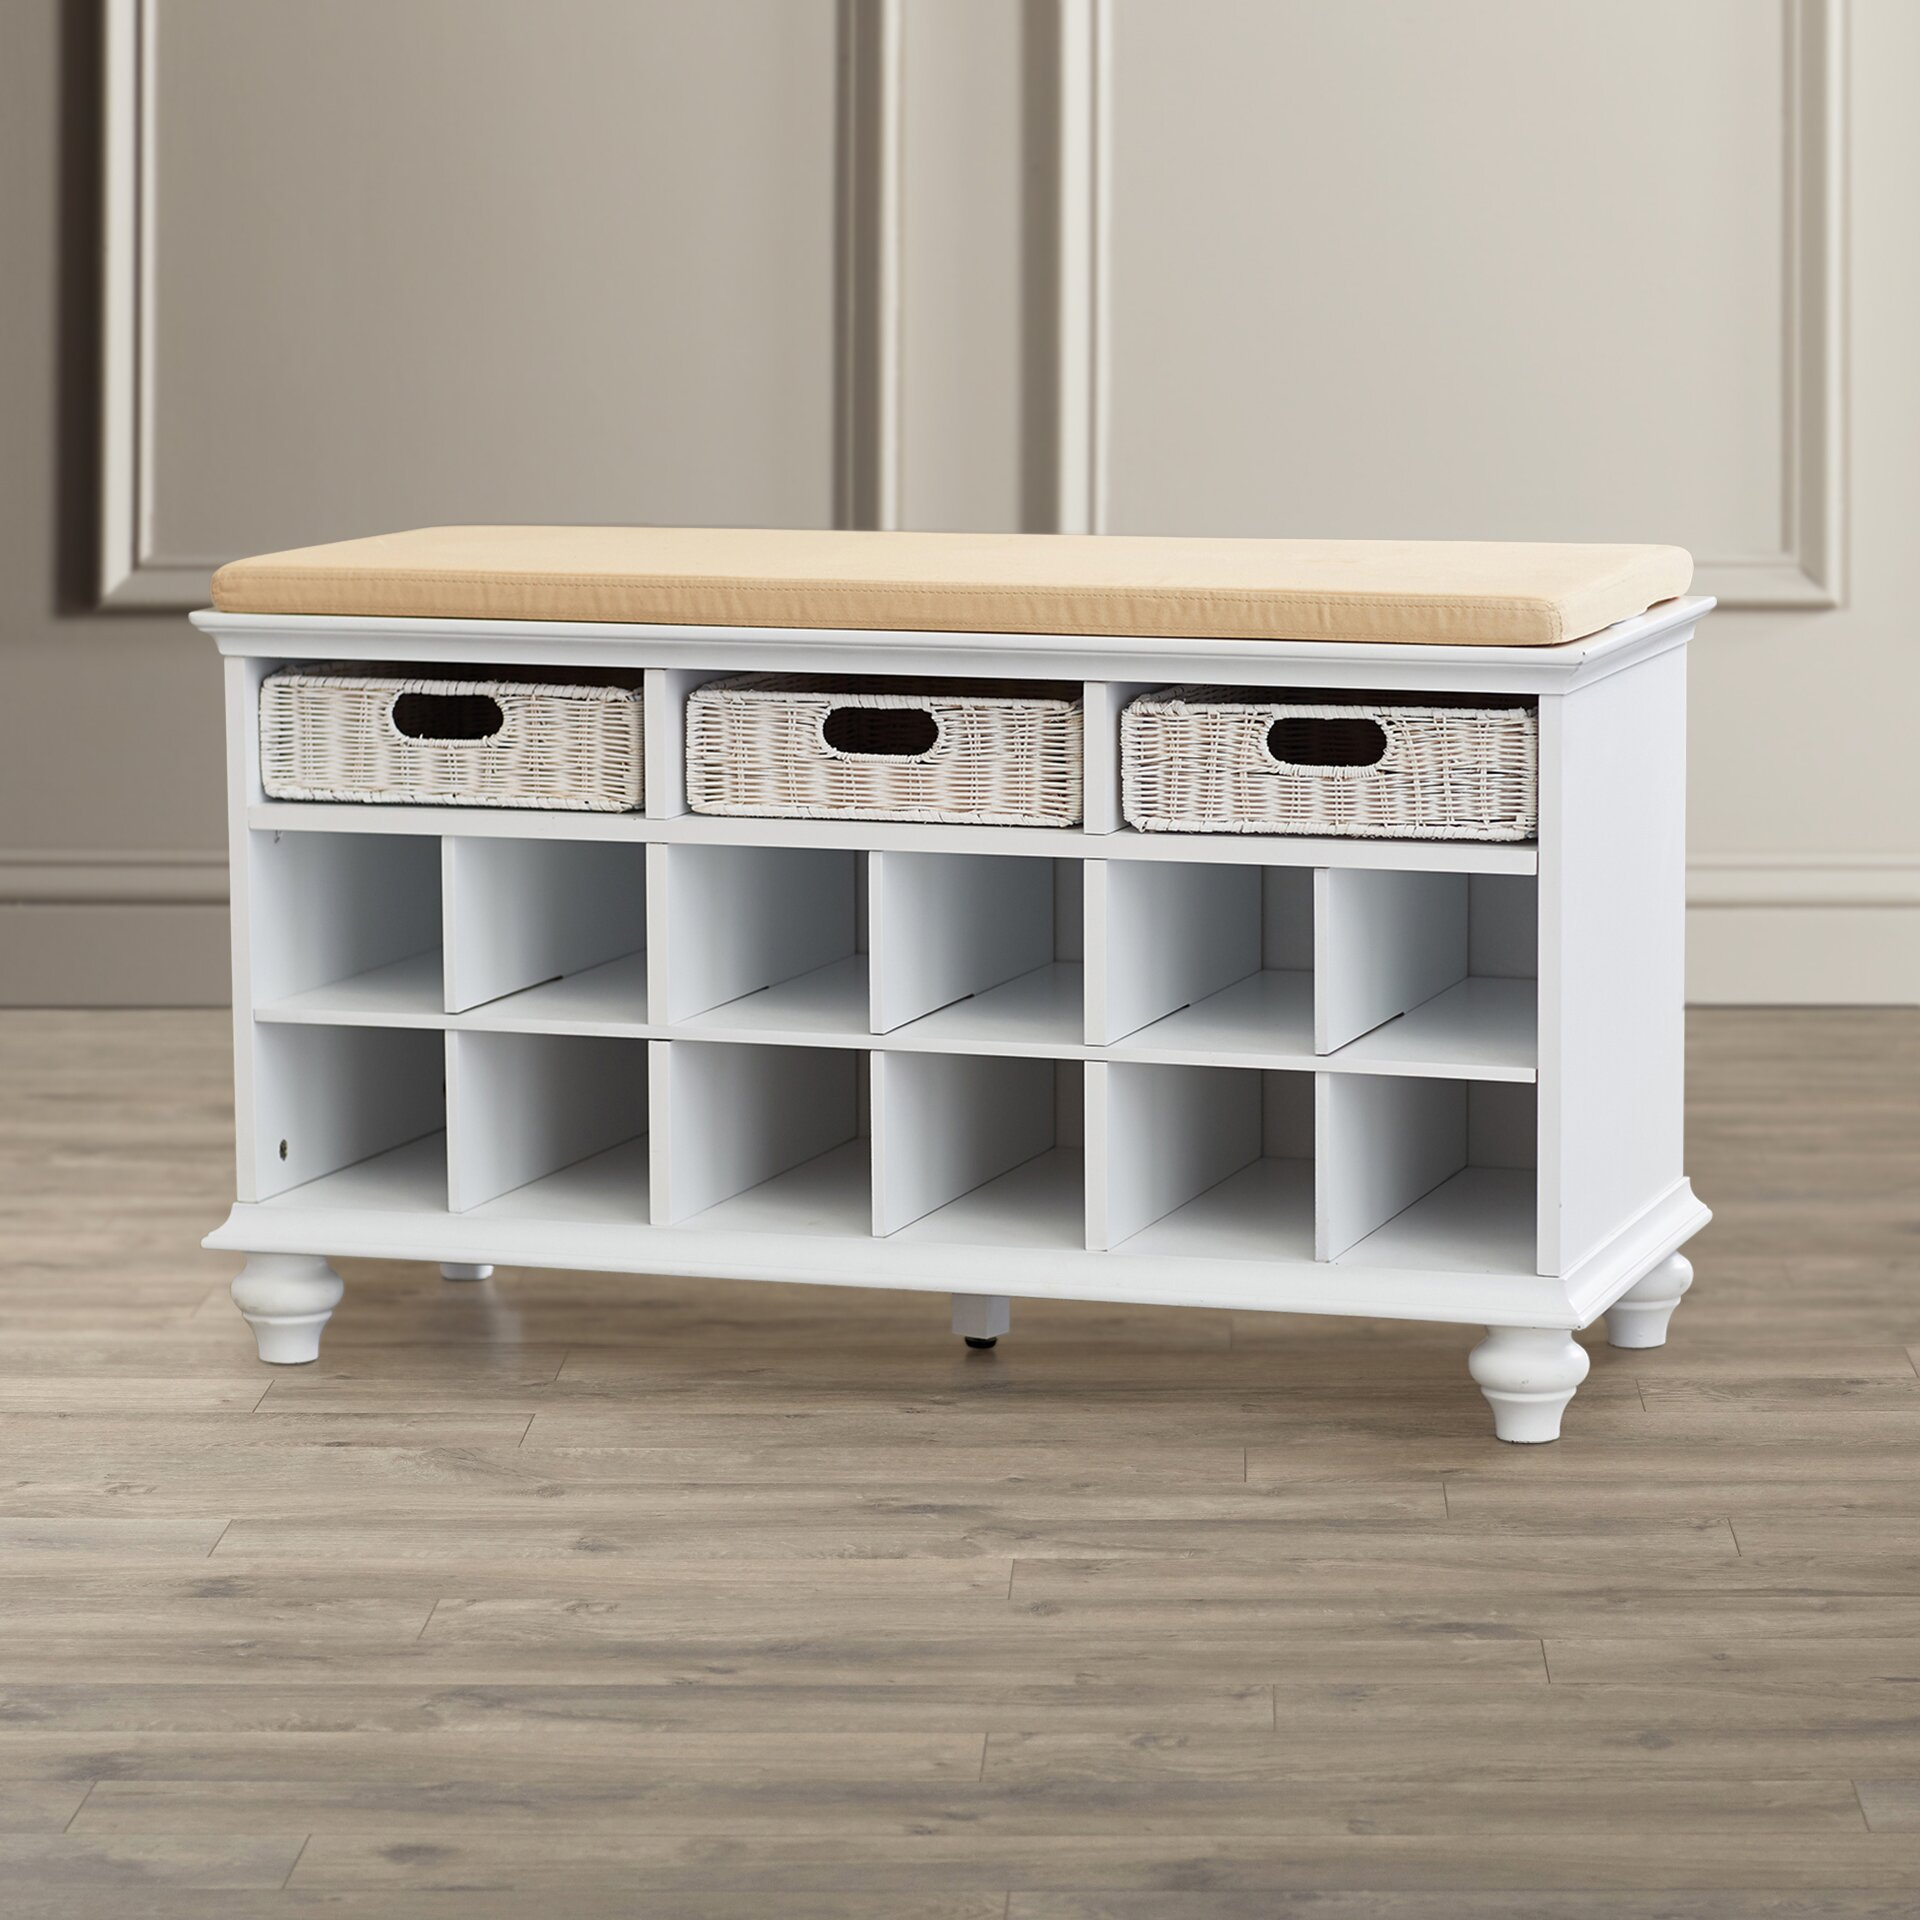 Darby Home Co Shoe Storage Bench Reviews Wayfair